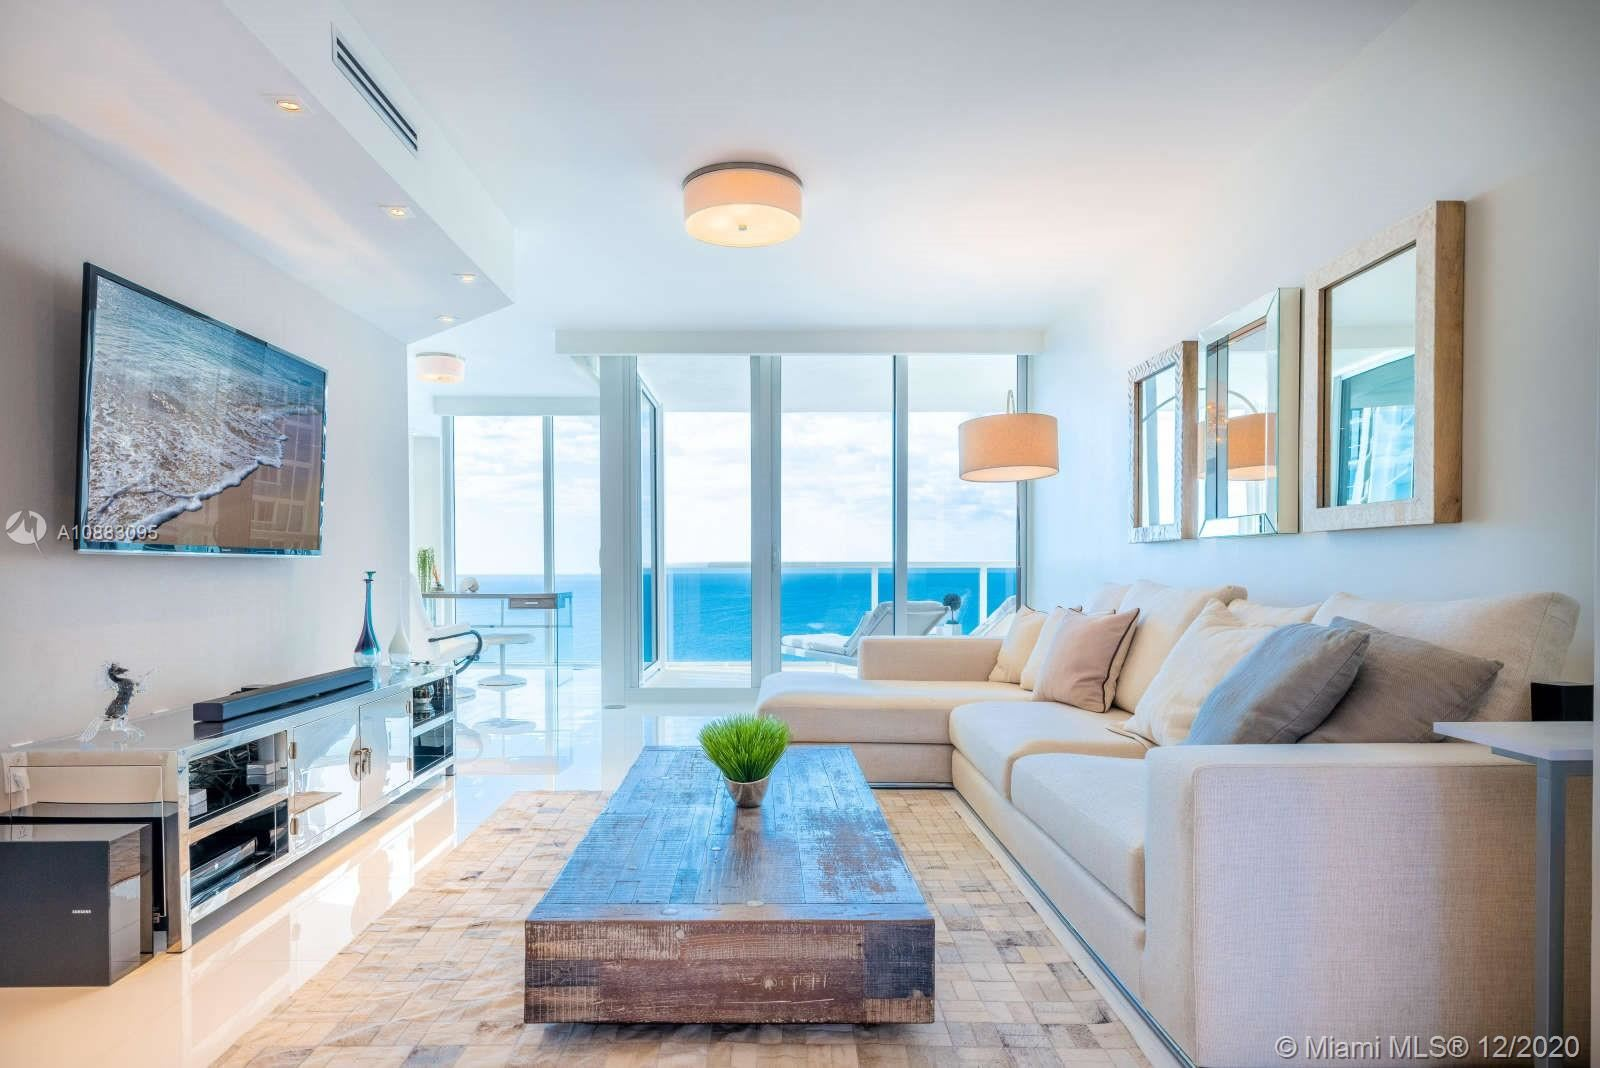 19111 Collins Ave #2102, Sunny Isles, FL 33160 - #: A10883095